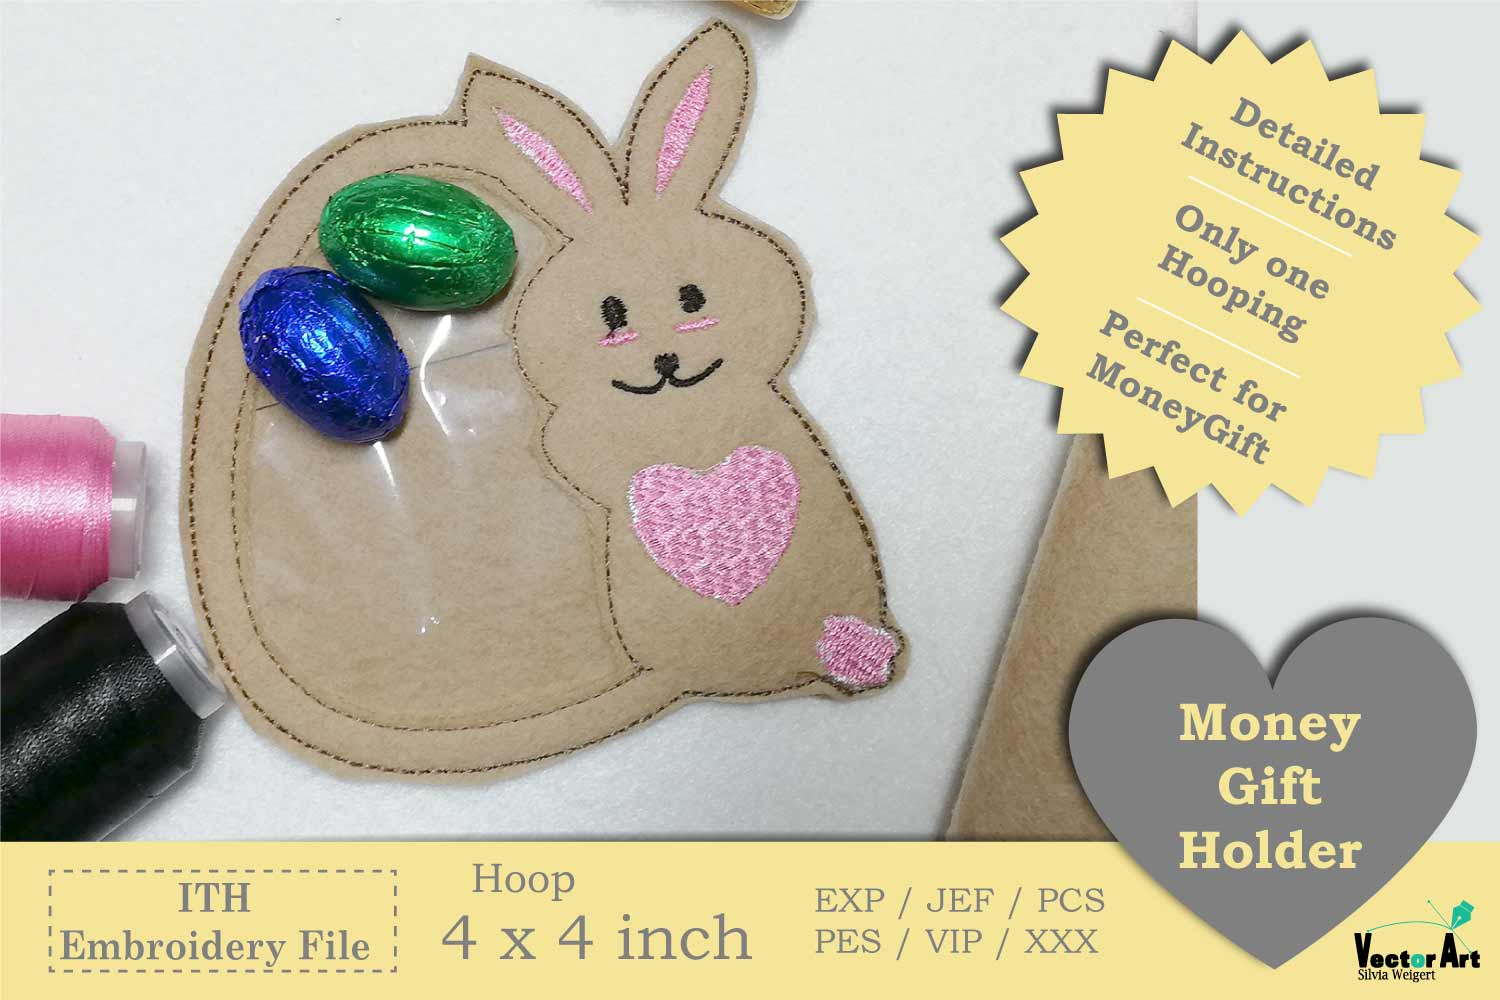 ITH - Bunny with Egg - Great Idea for Money Gifts example image 1